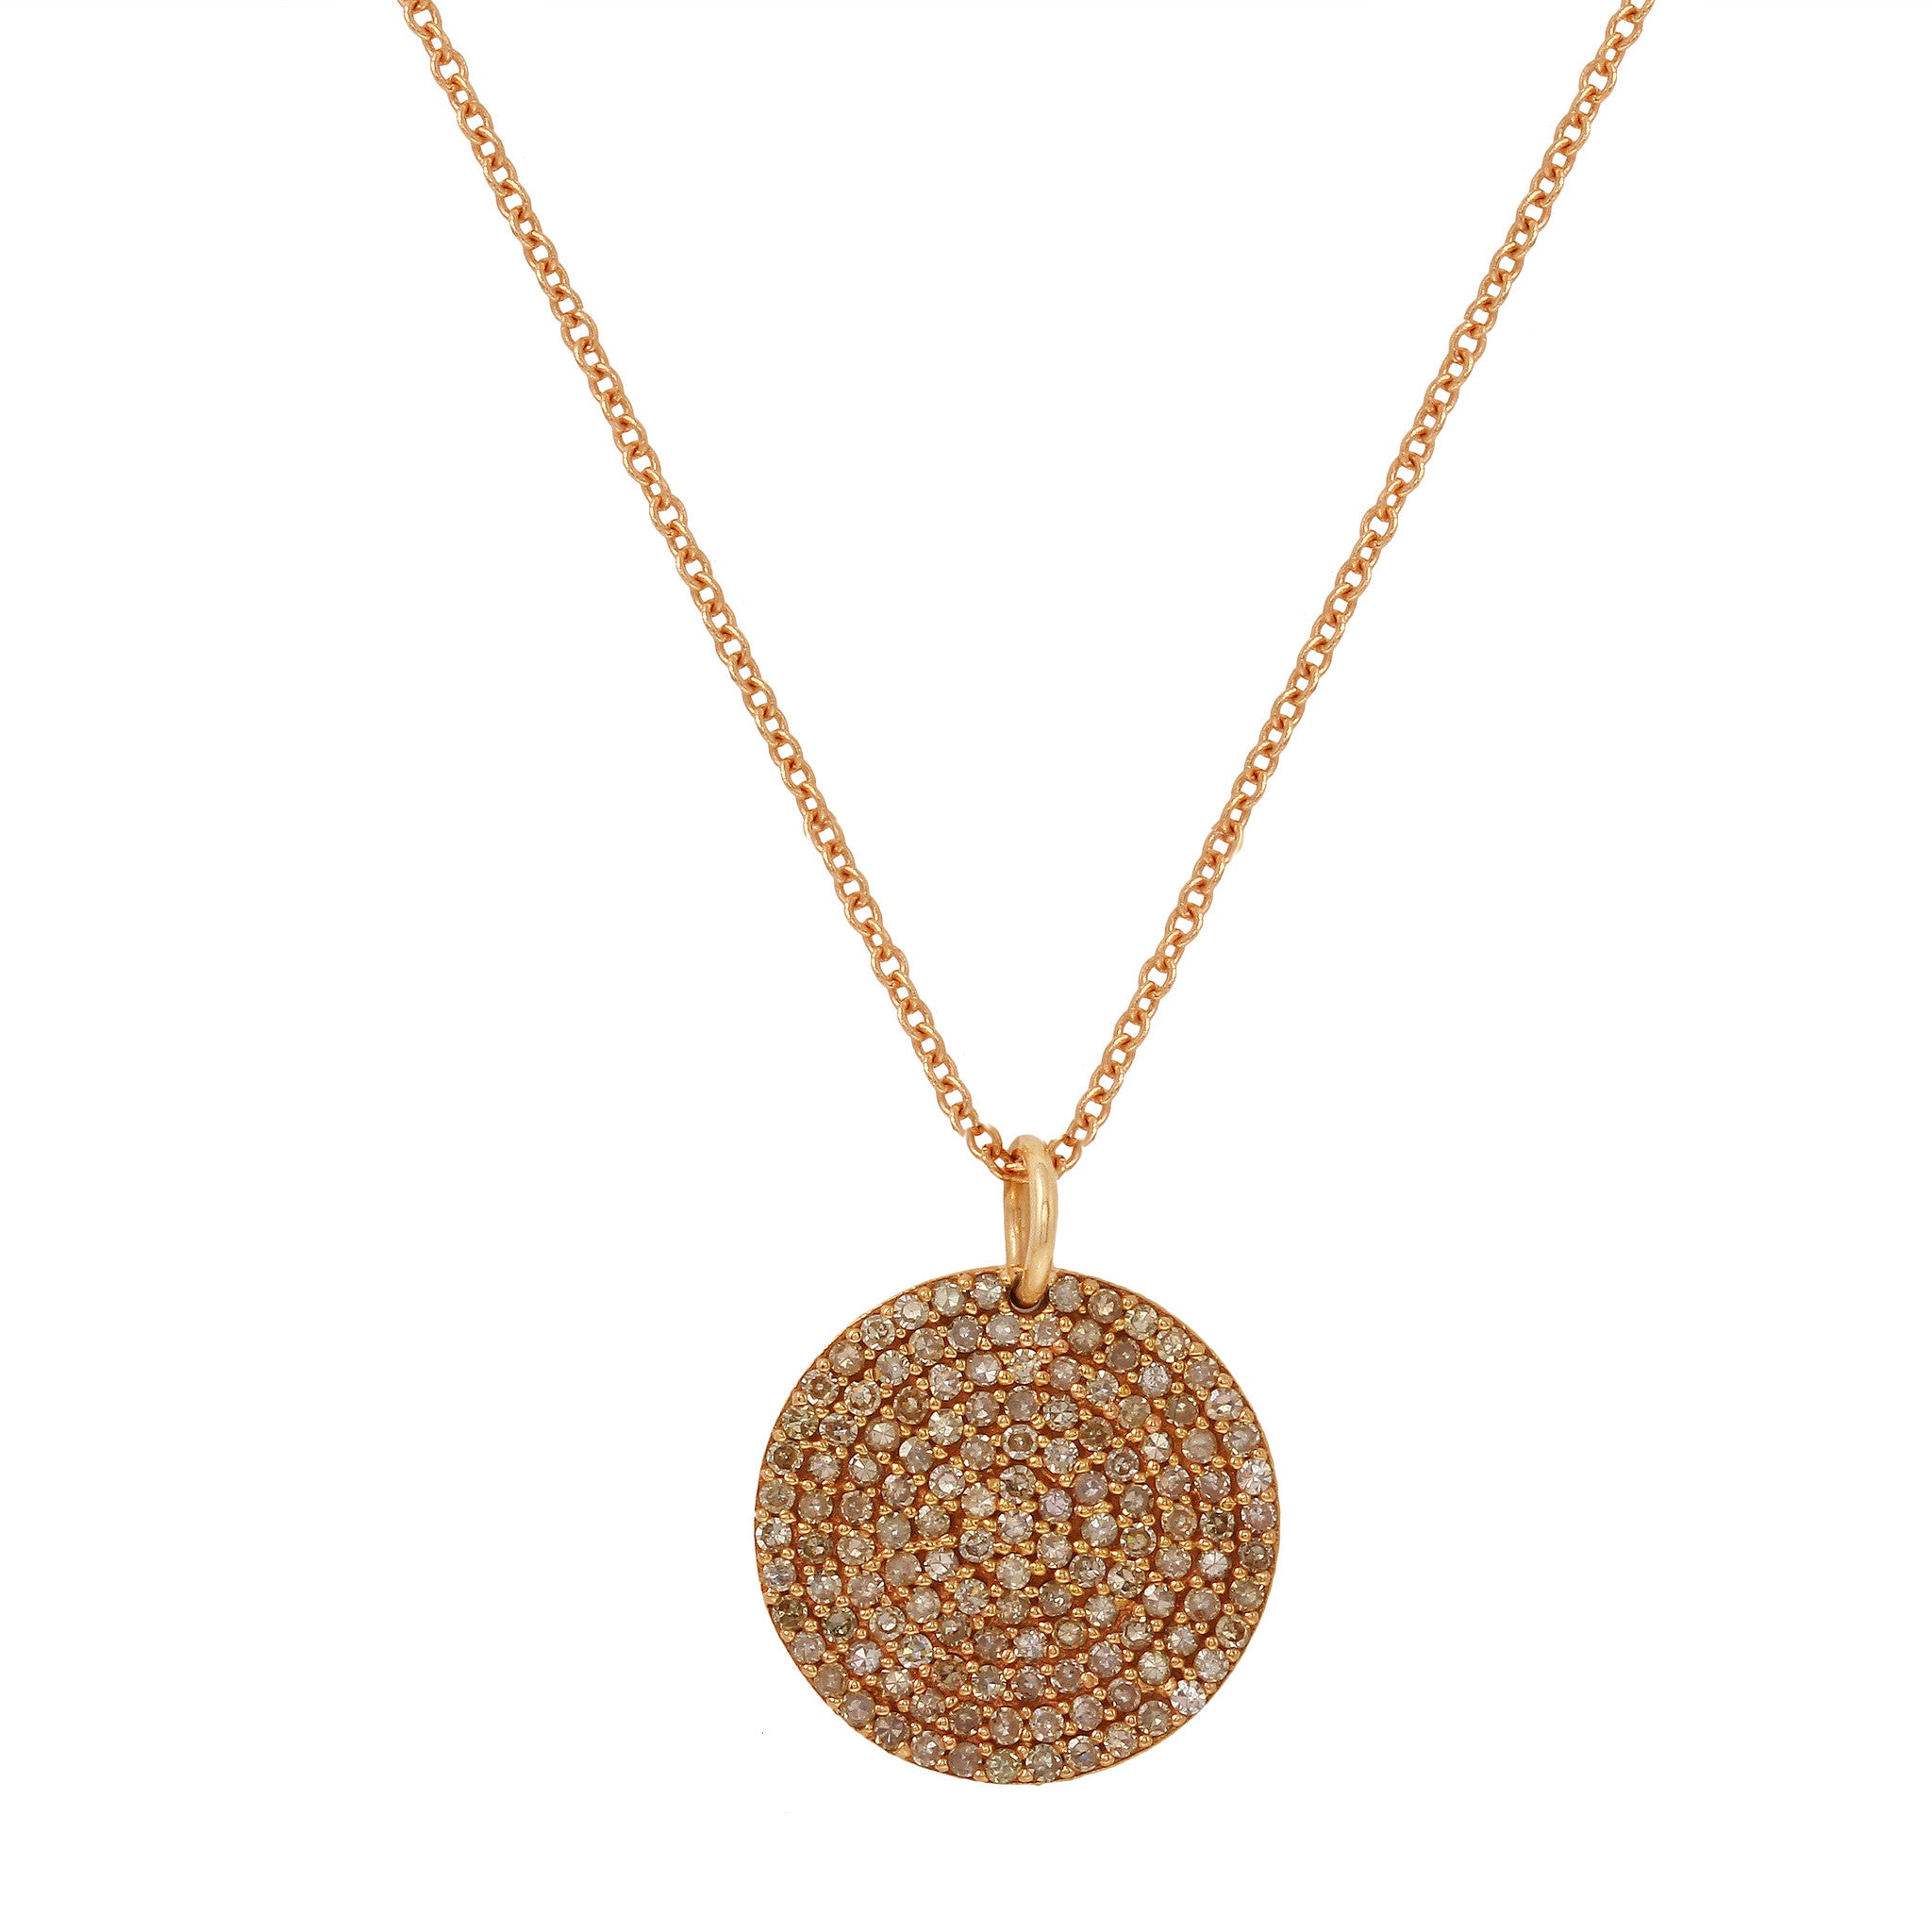 Rose Gold and Pavé Diamond Necklace